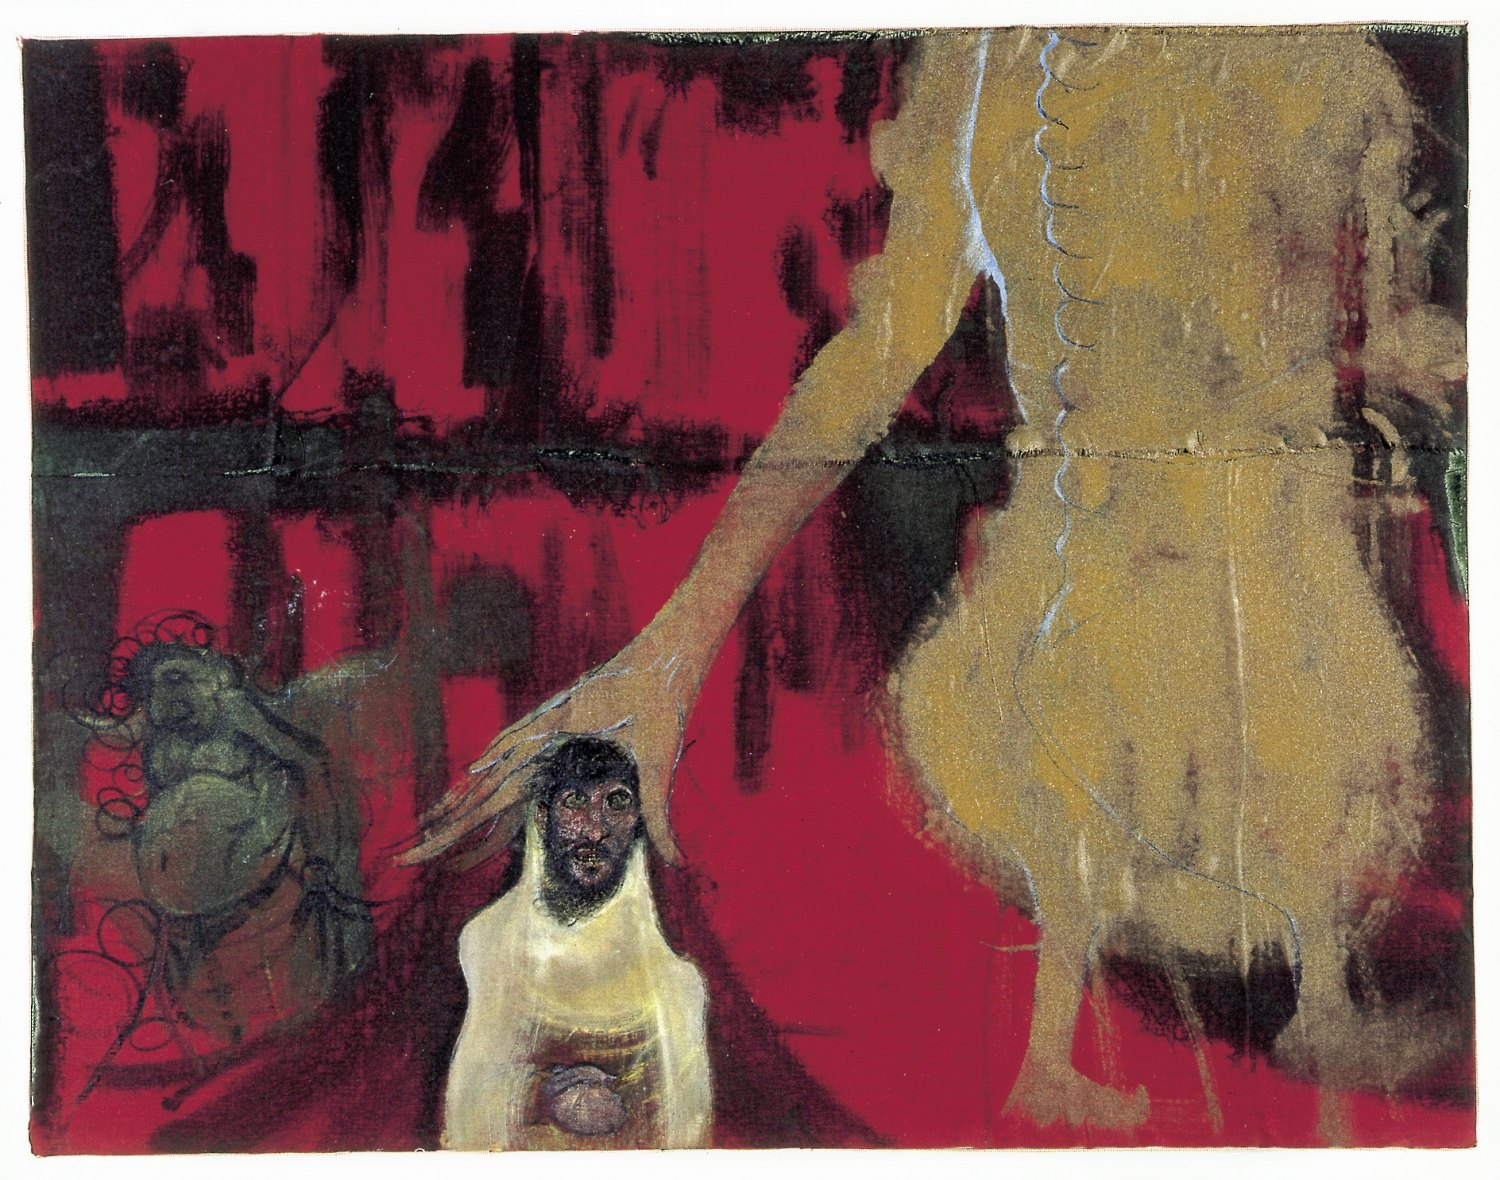 Kai Althoff Gott geht vorüber, 2002 Watercolor, spar varnish, varnish, fabric on canvas, 70 × 90 × 8 cm